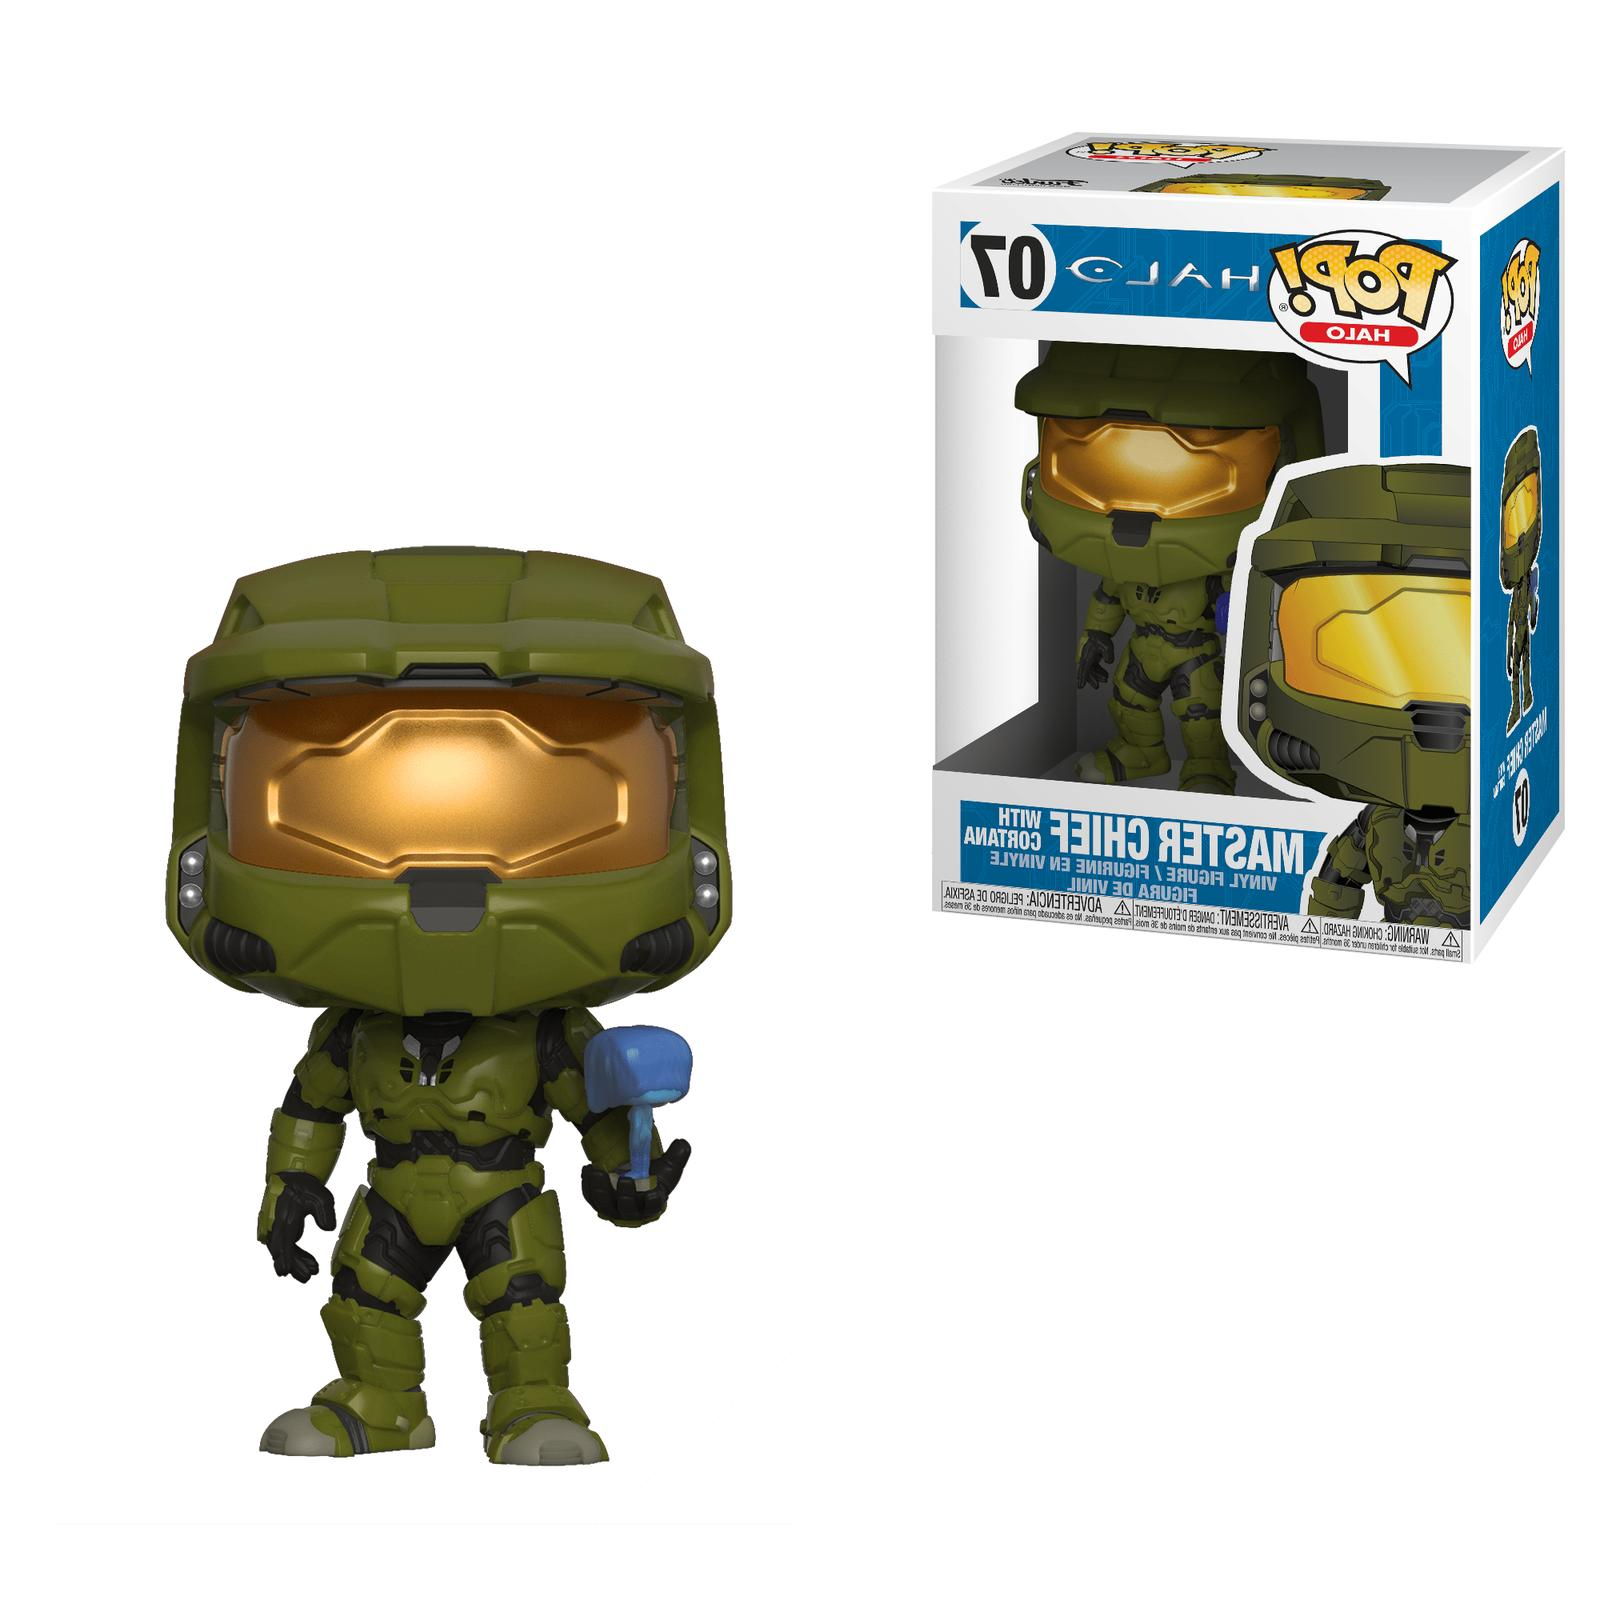 Funko Pop Games Halo Master Chief with Cortana Vinyl Action